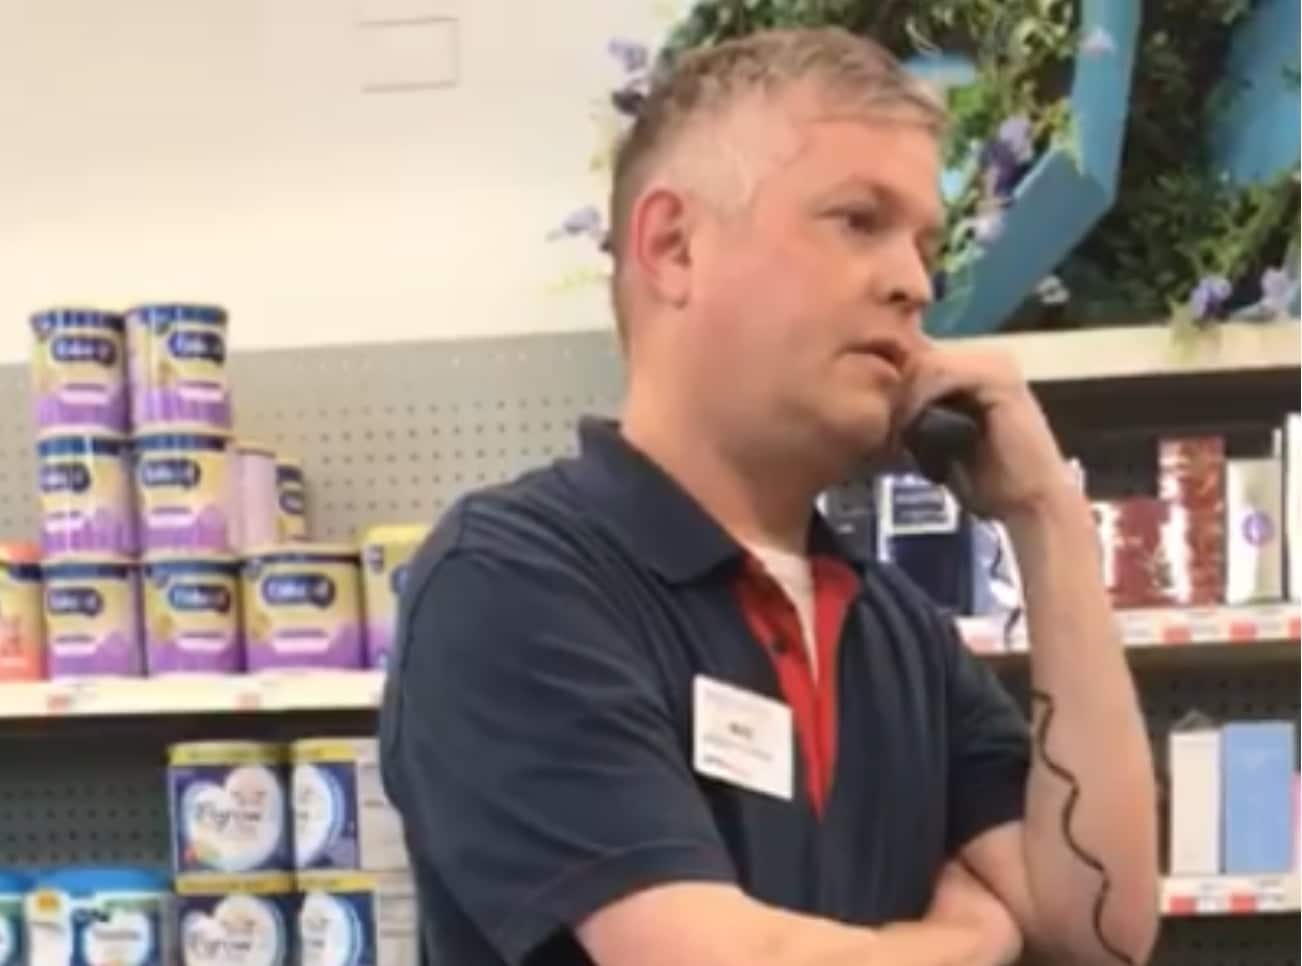 CVS employees call 911 on black woman trying to use a coupon